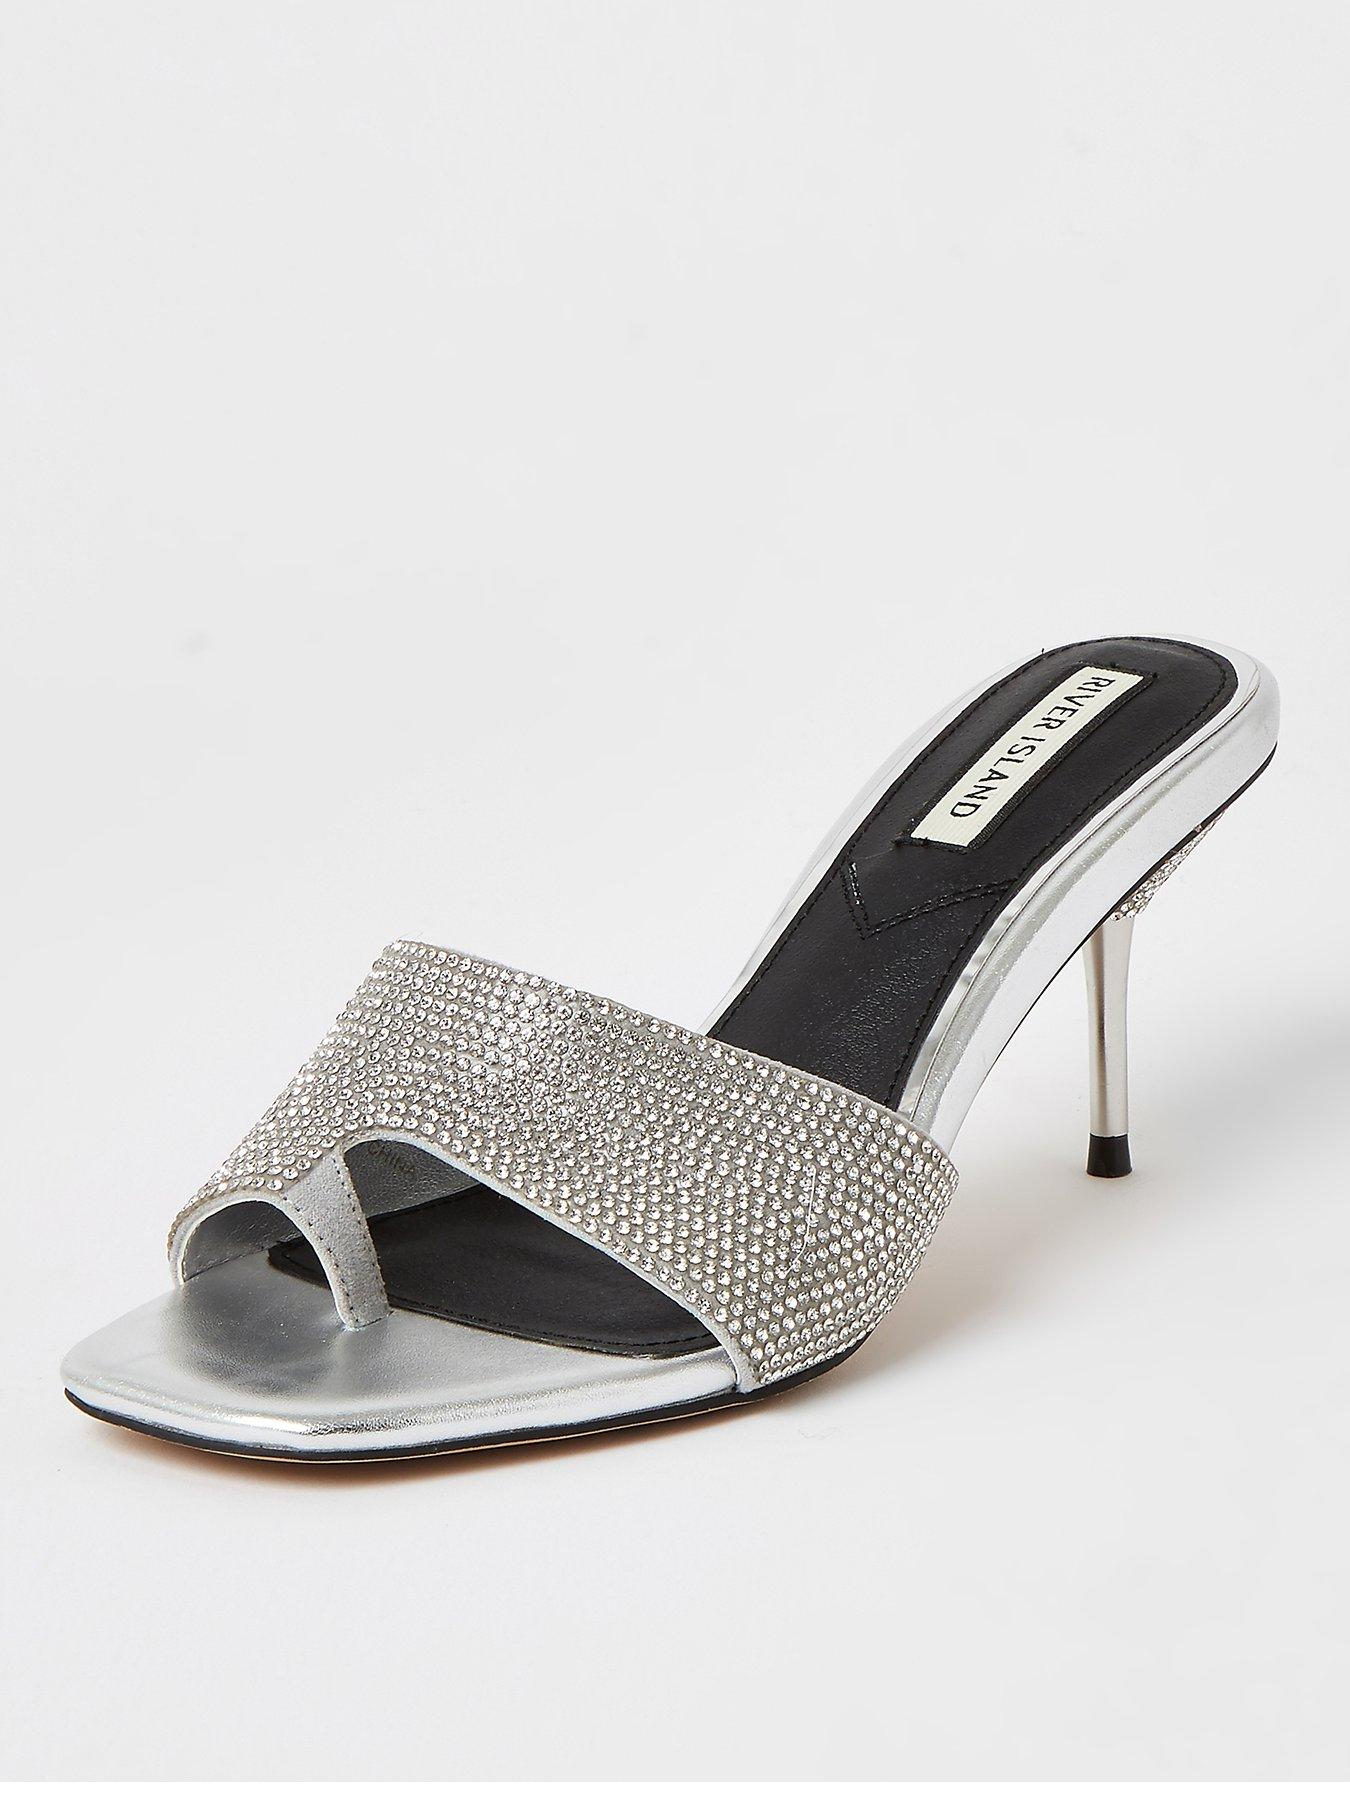 """SPARKLE GIRLZ 12/"""" BARBIE DOLL SHOES SILVER STRAPPY PEEP TOE HIGH HEEL SANDALS"""